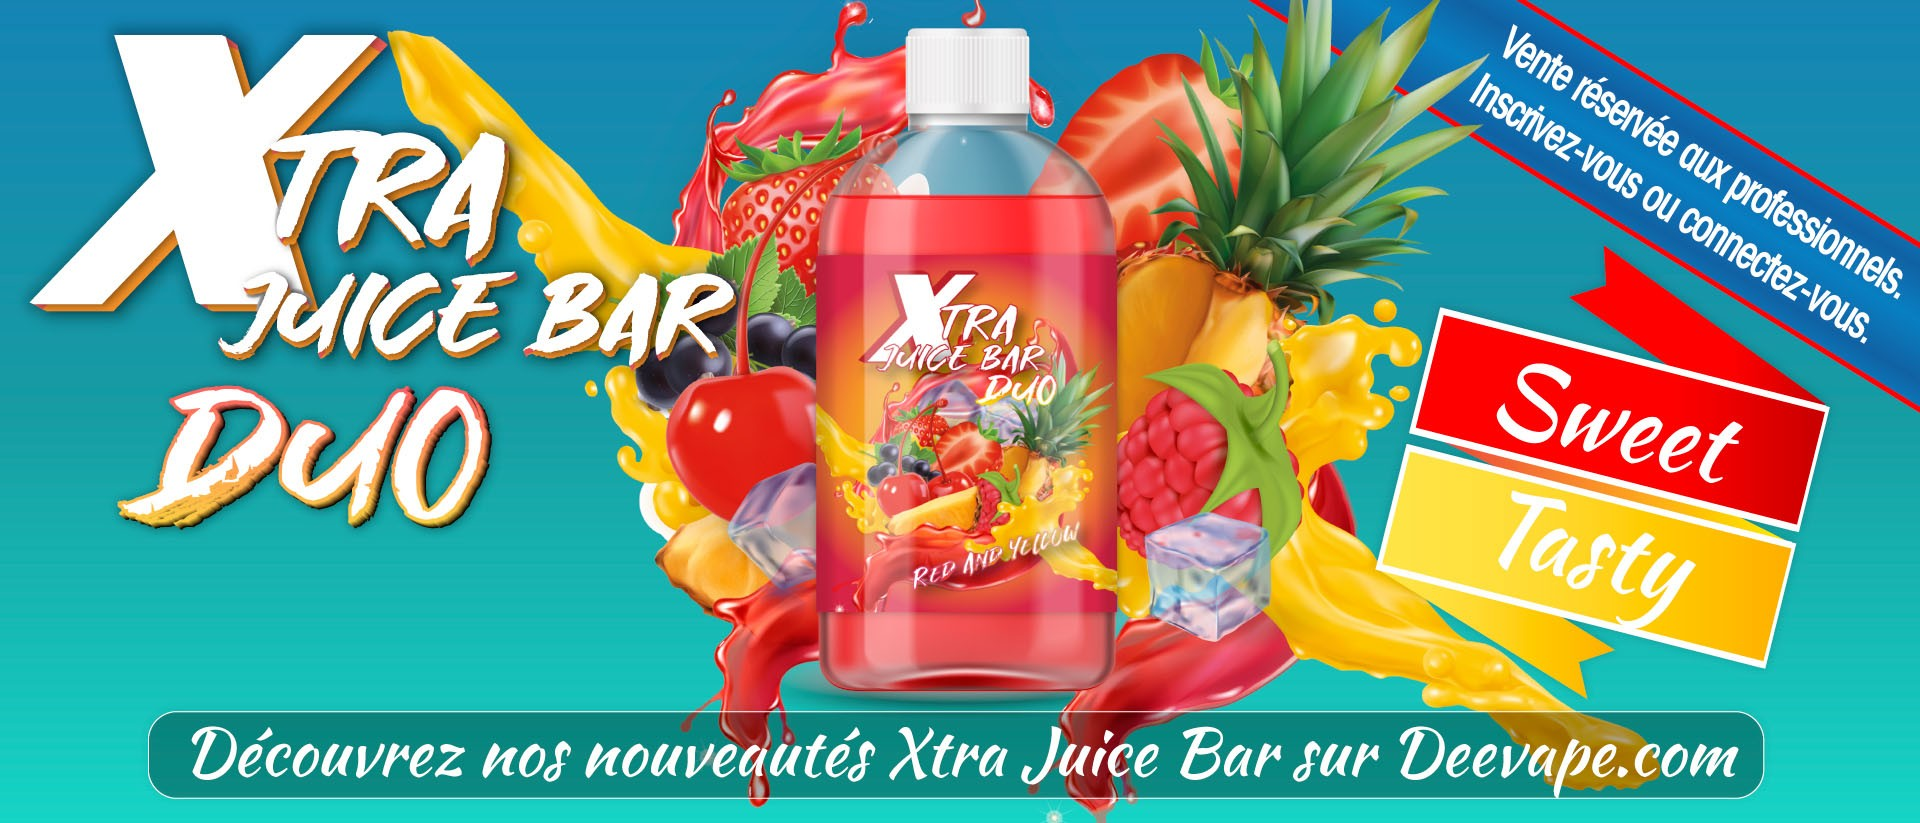 XTRA JUICE BAR DUO - RED AND YELLOW